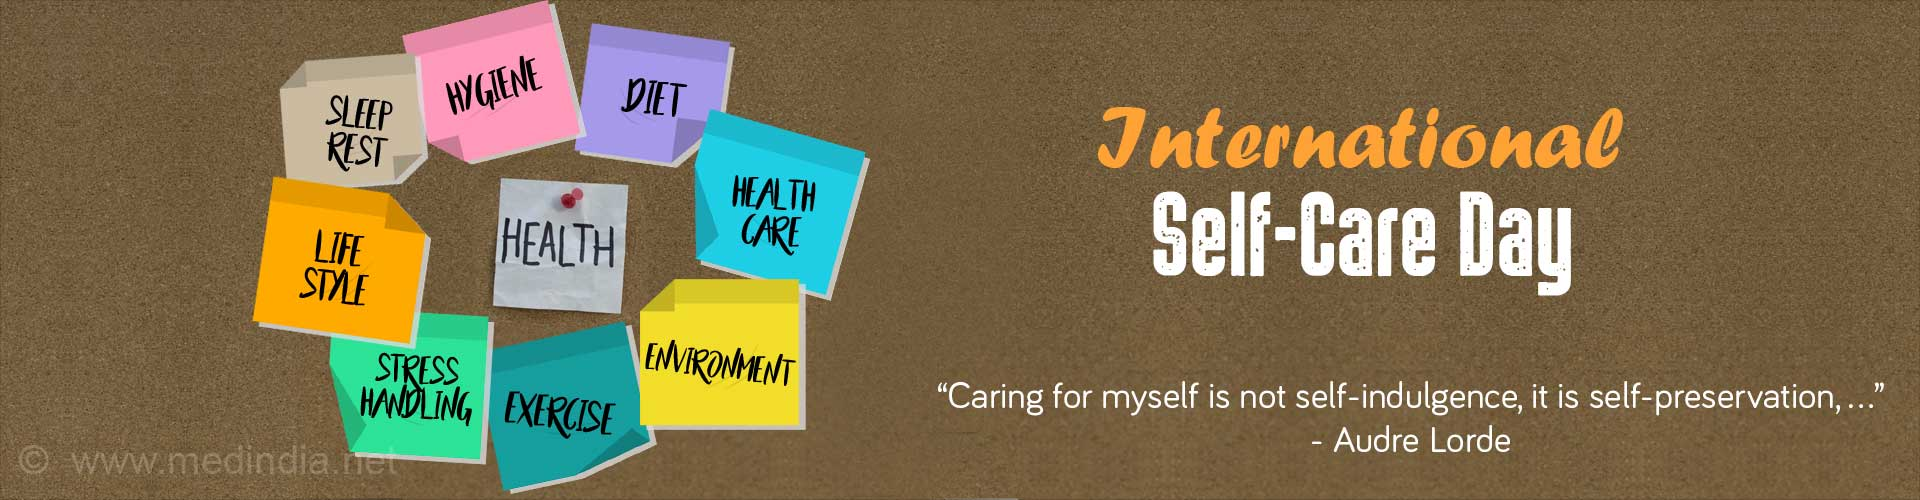 International Self-Care Day 2017